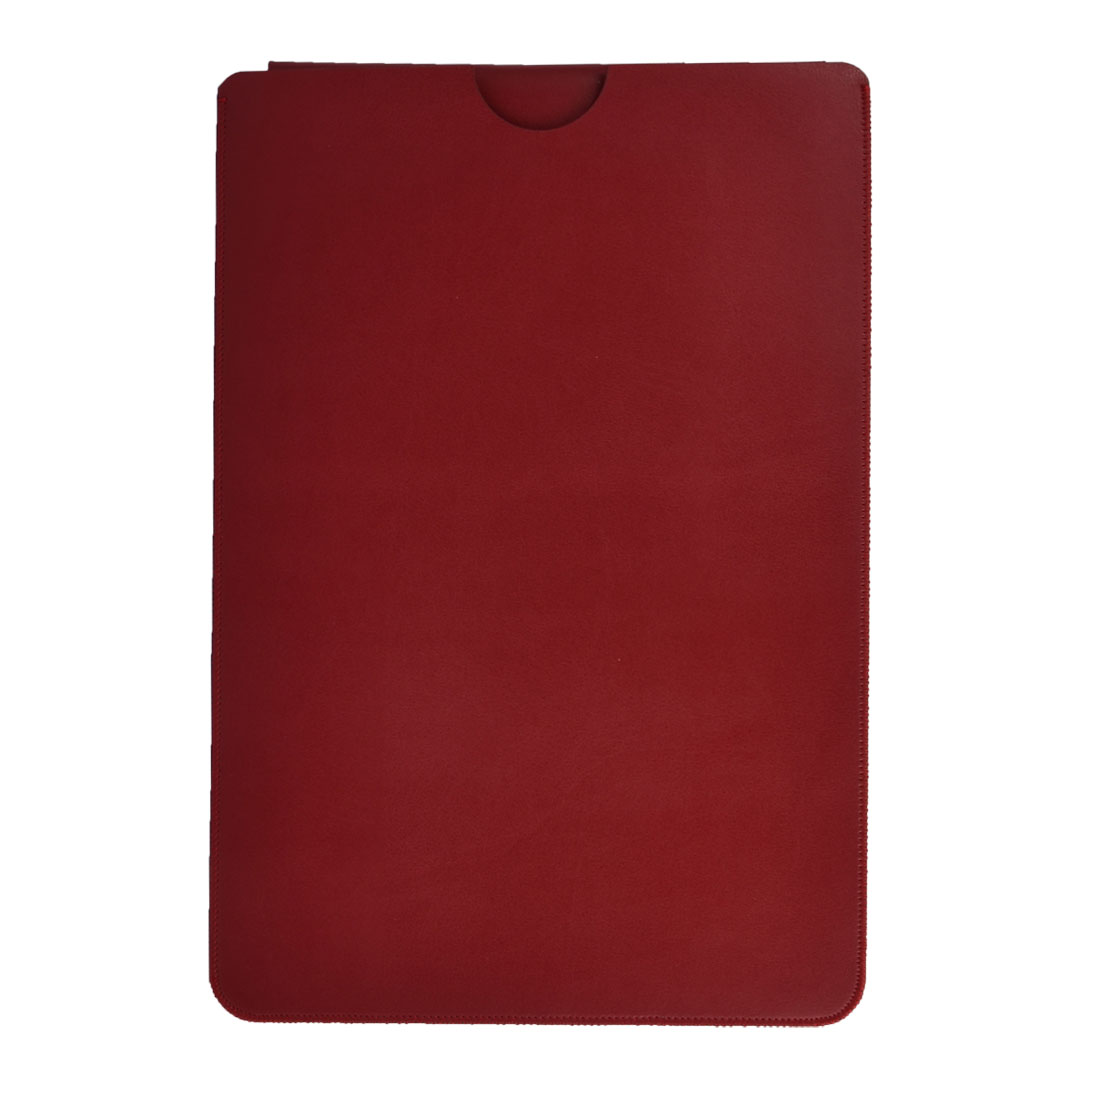 Computer Protector Notebook Pouch Cover Laptop Sleeve Bag Carmine for Macbook 15 Inch